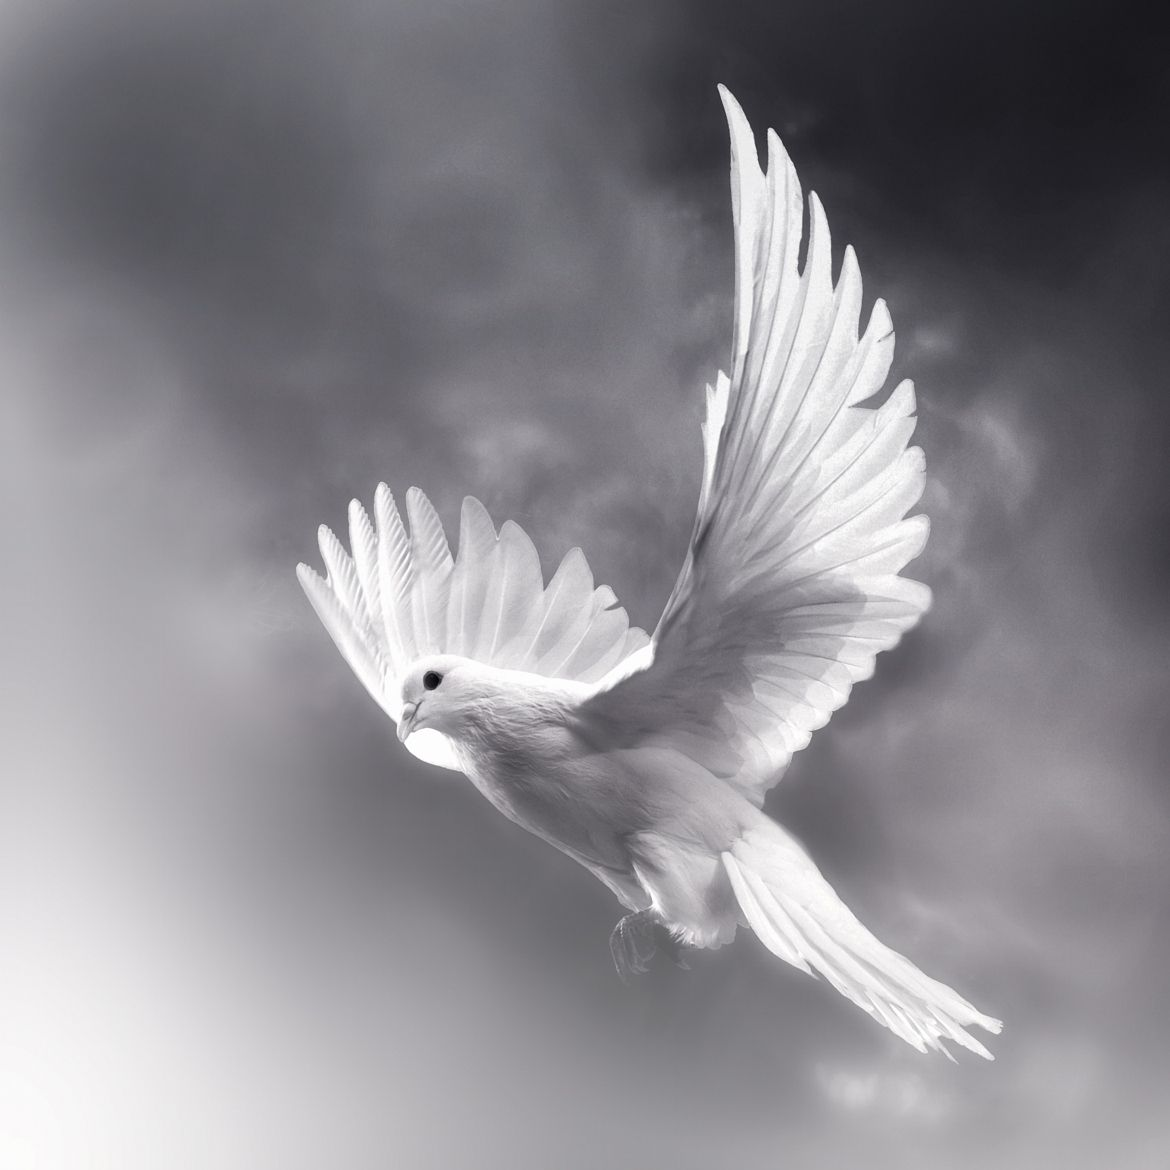 Pure Soul Pic Pinterest: Photograph Pure Soul By Josep Sumalla On 500px